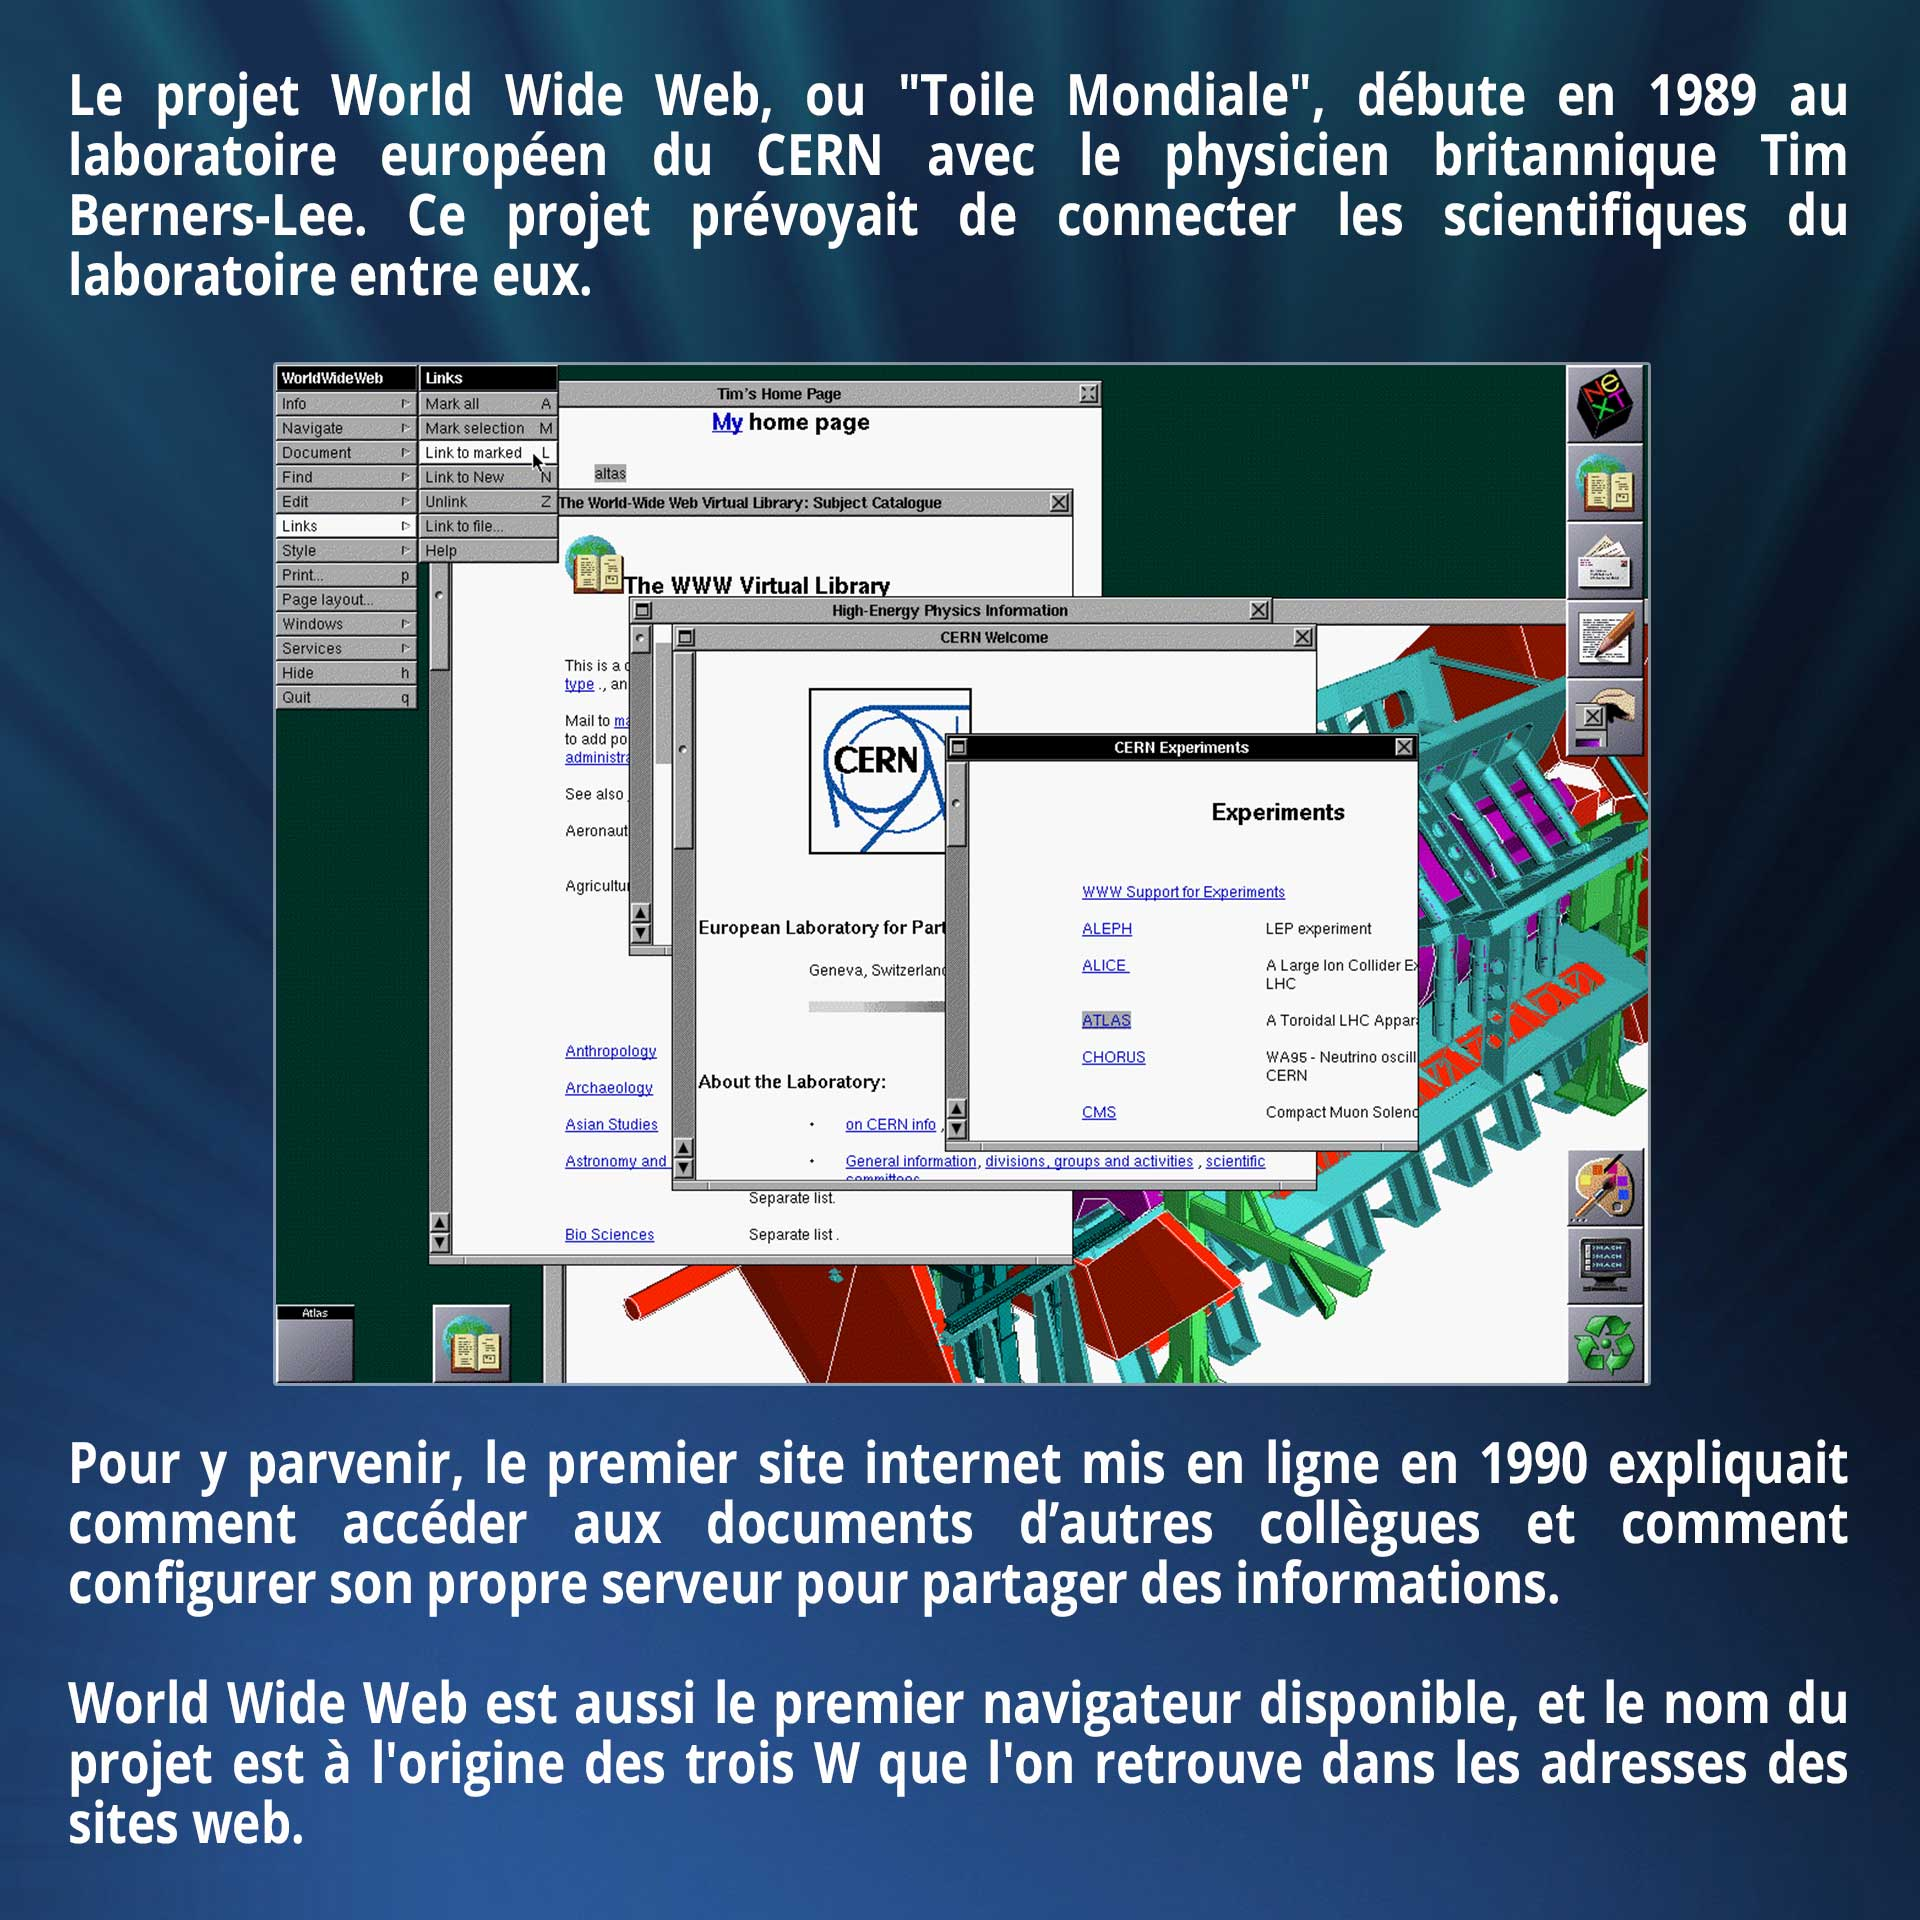 Le projet World Wide Web, ou